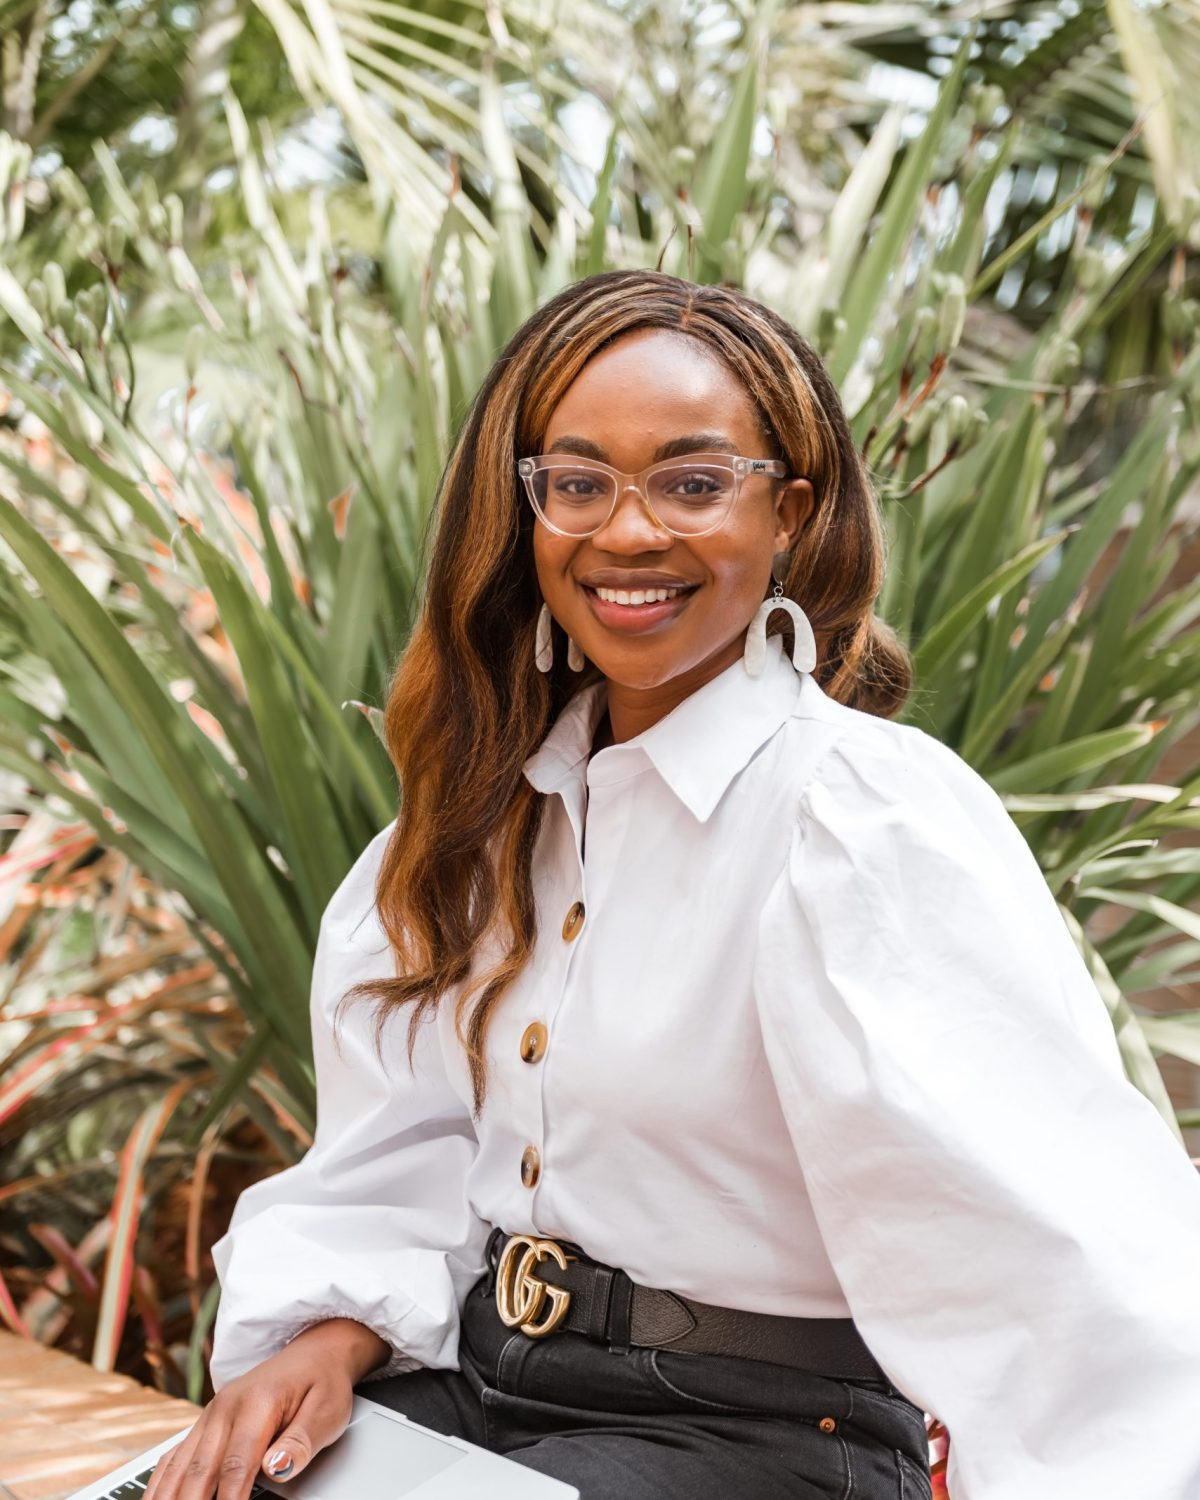 Ijeoma Kola sitting outdoors and smiling with computer on lap - Blog giving advice on changing careers